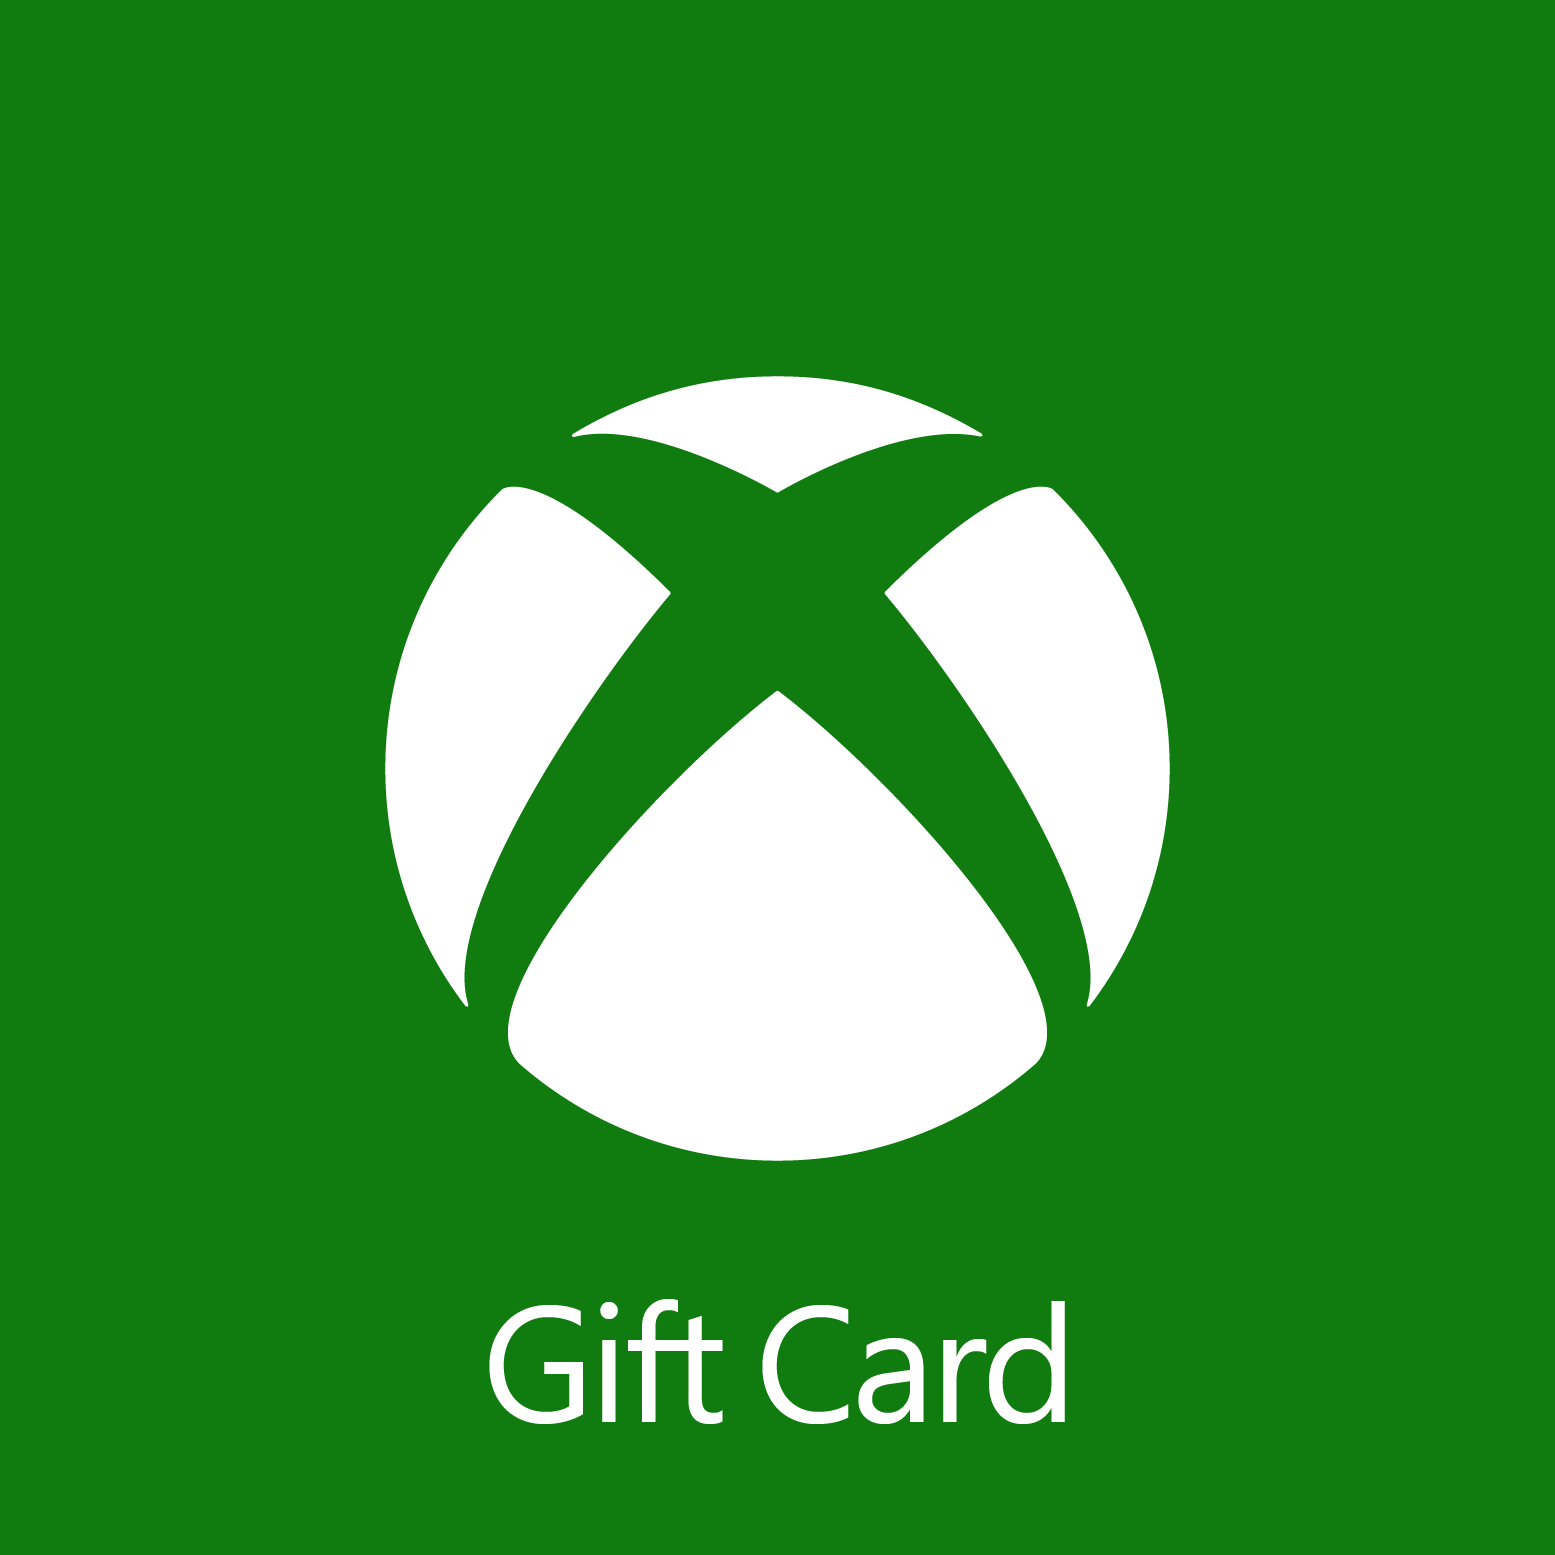 RE1Xx20?ver=255f - $39.00 Xbox Digital Gift Card